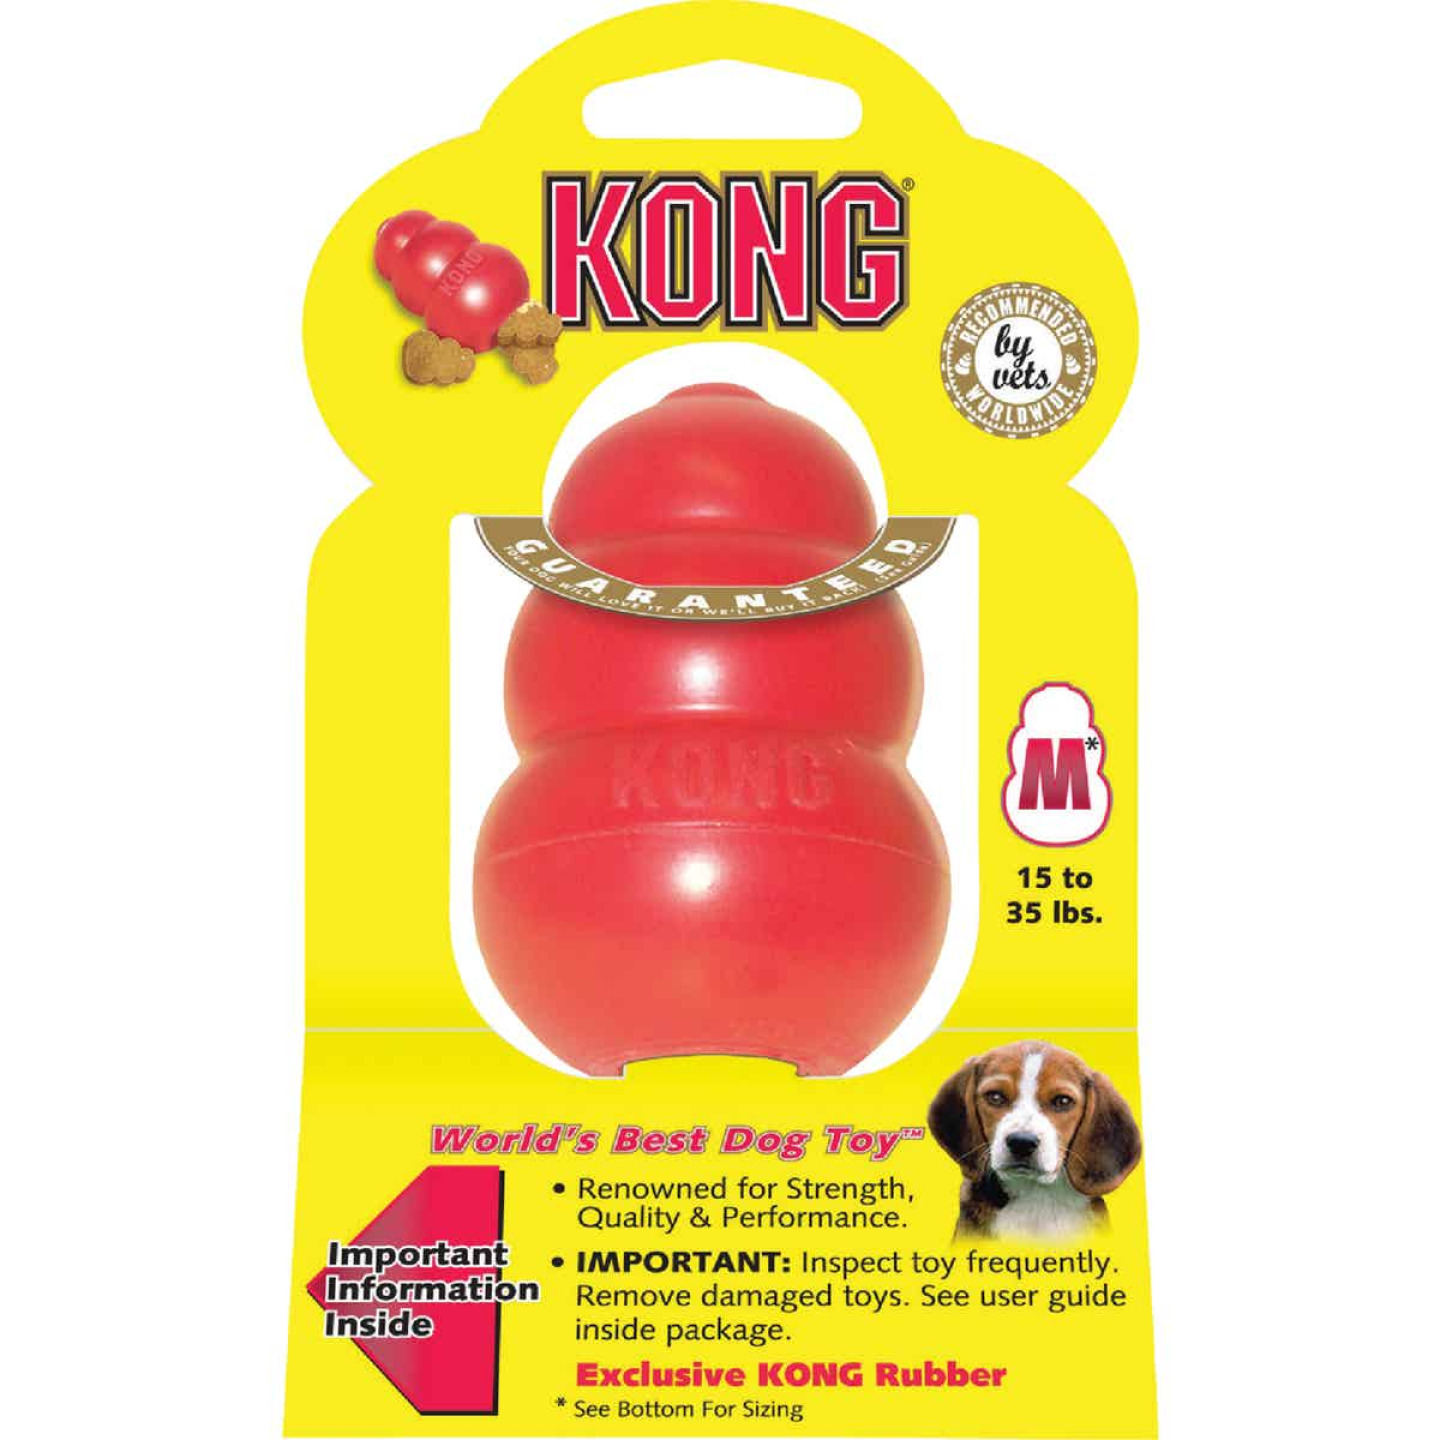 Kong Classic Dog Chew Toy, 15 to 35 Lb. Image 1